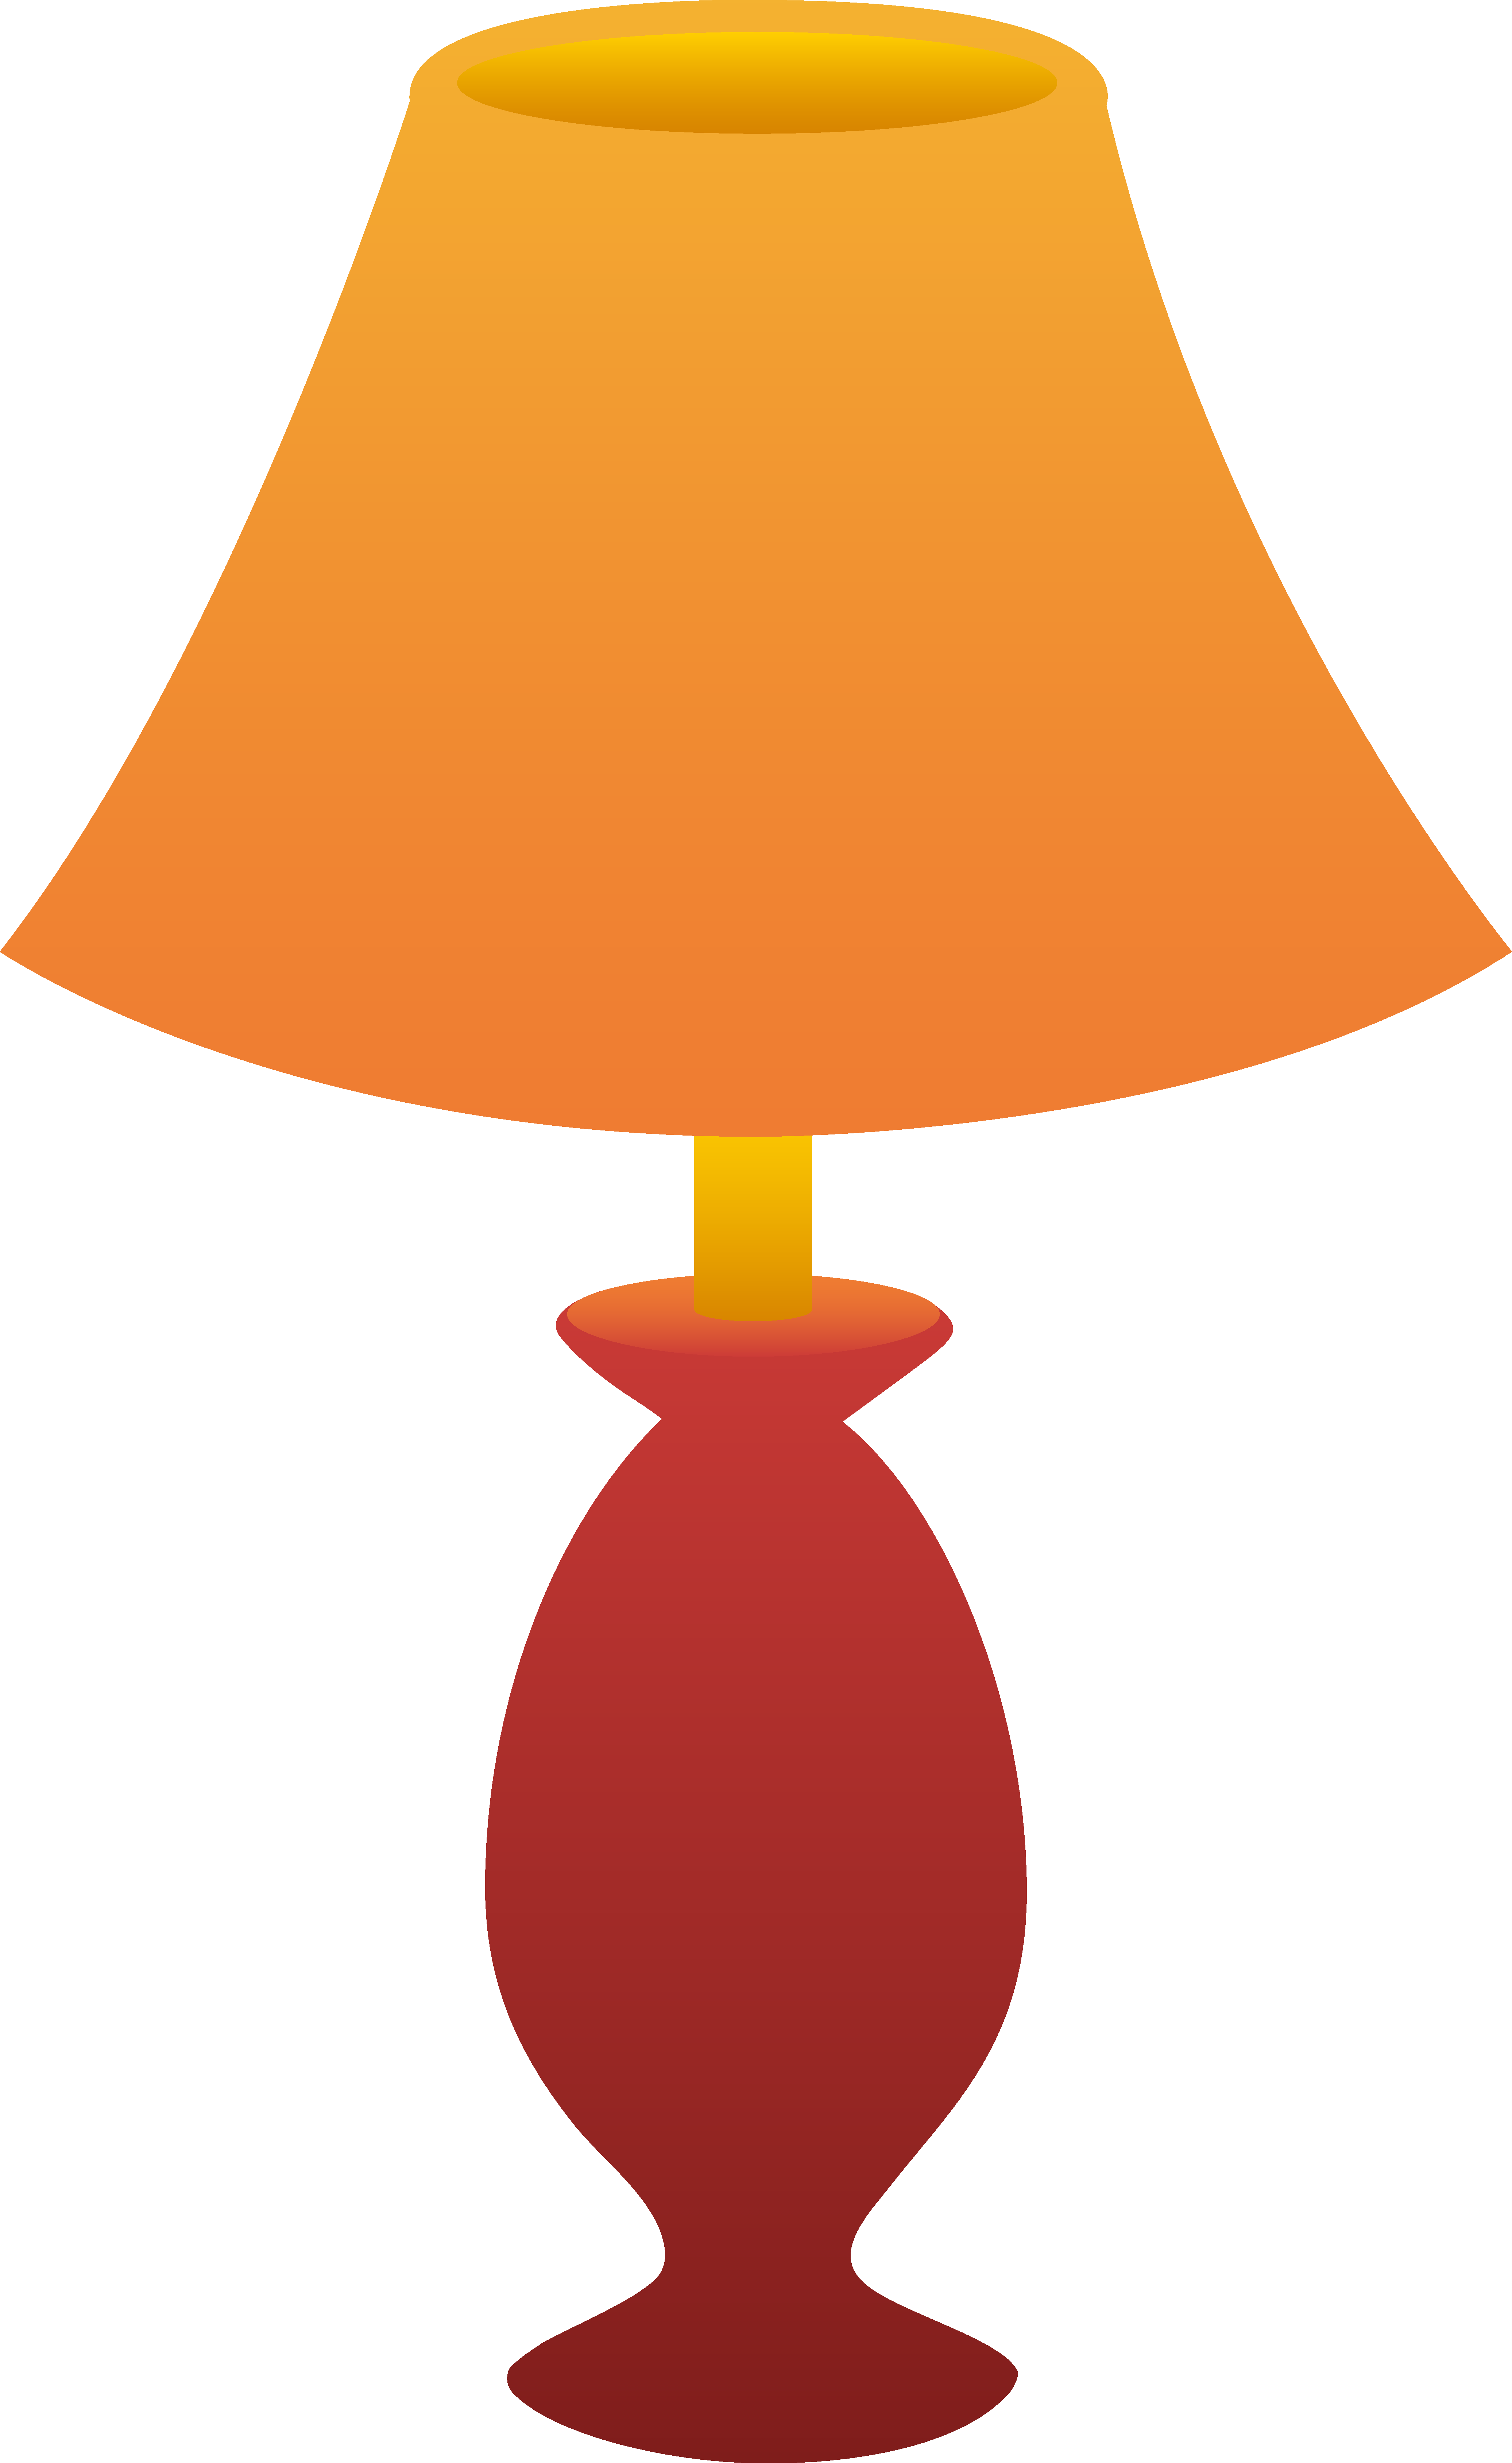 Clipart side table and lamp.